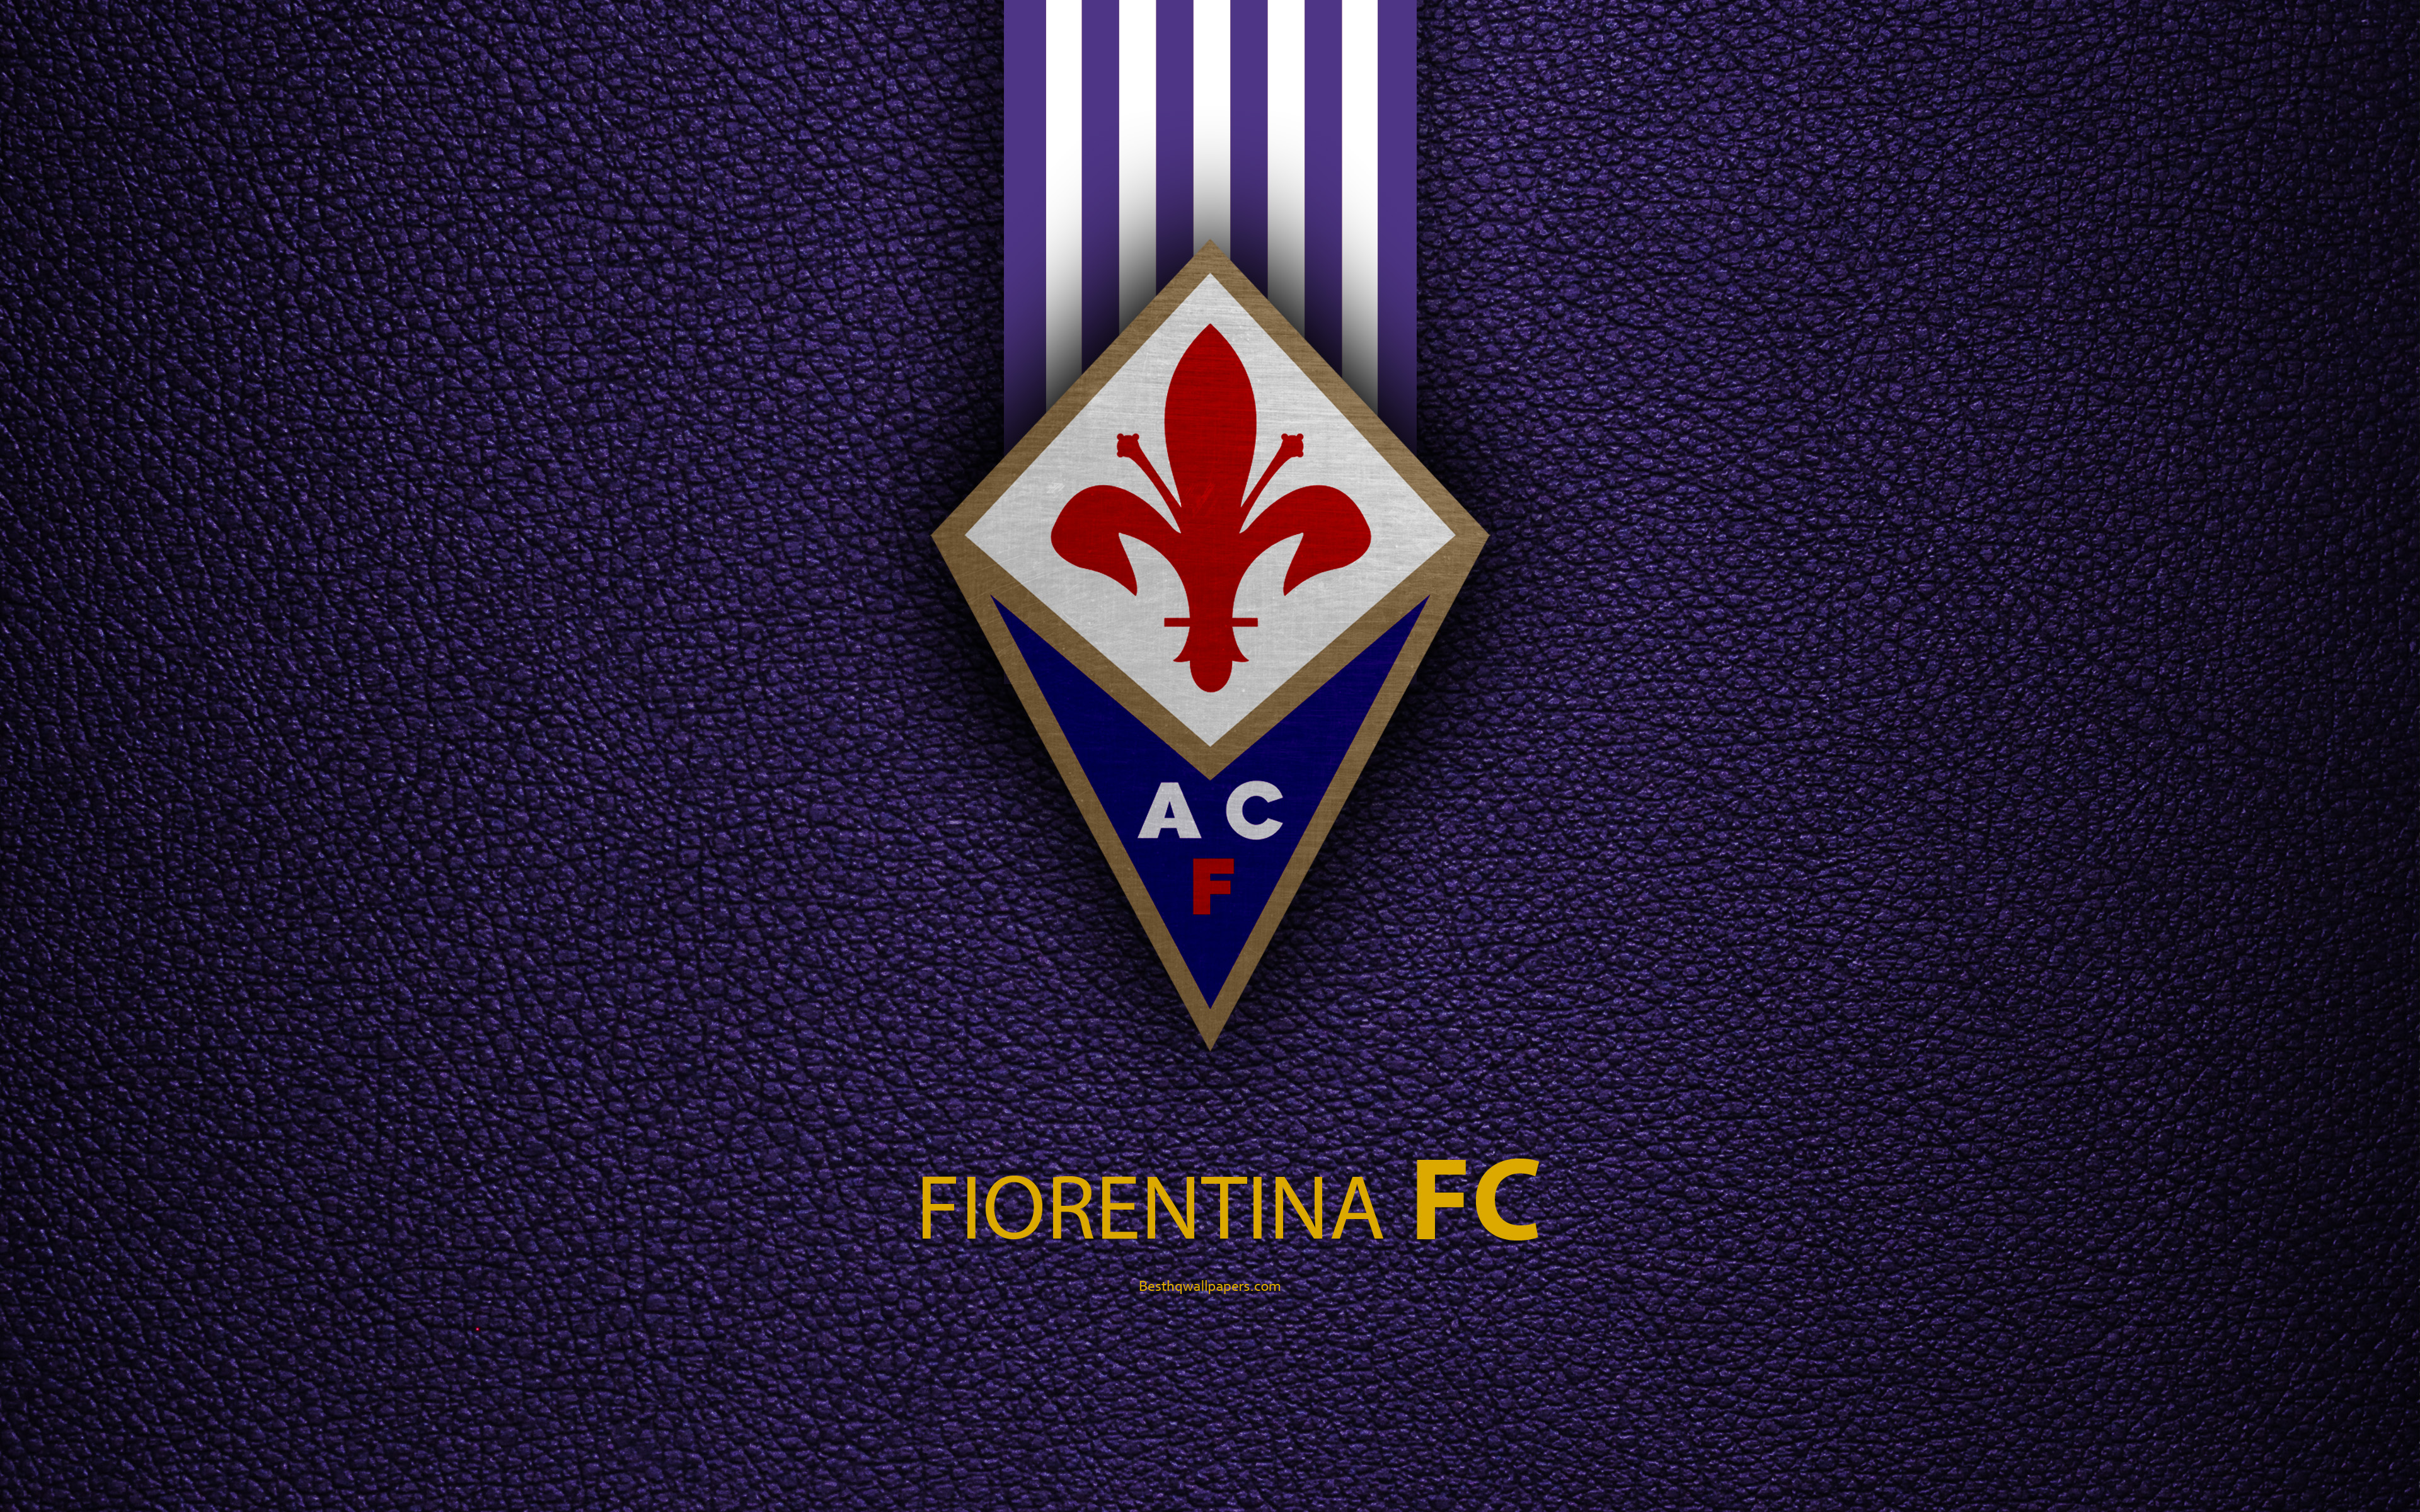 Fiorentina start a new chapter with Giuseppe Iachini